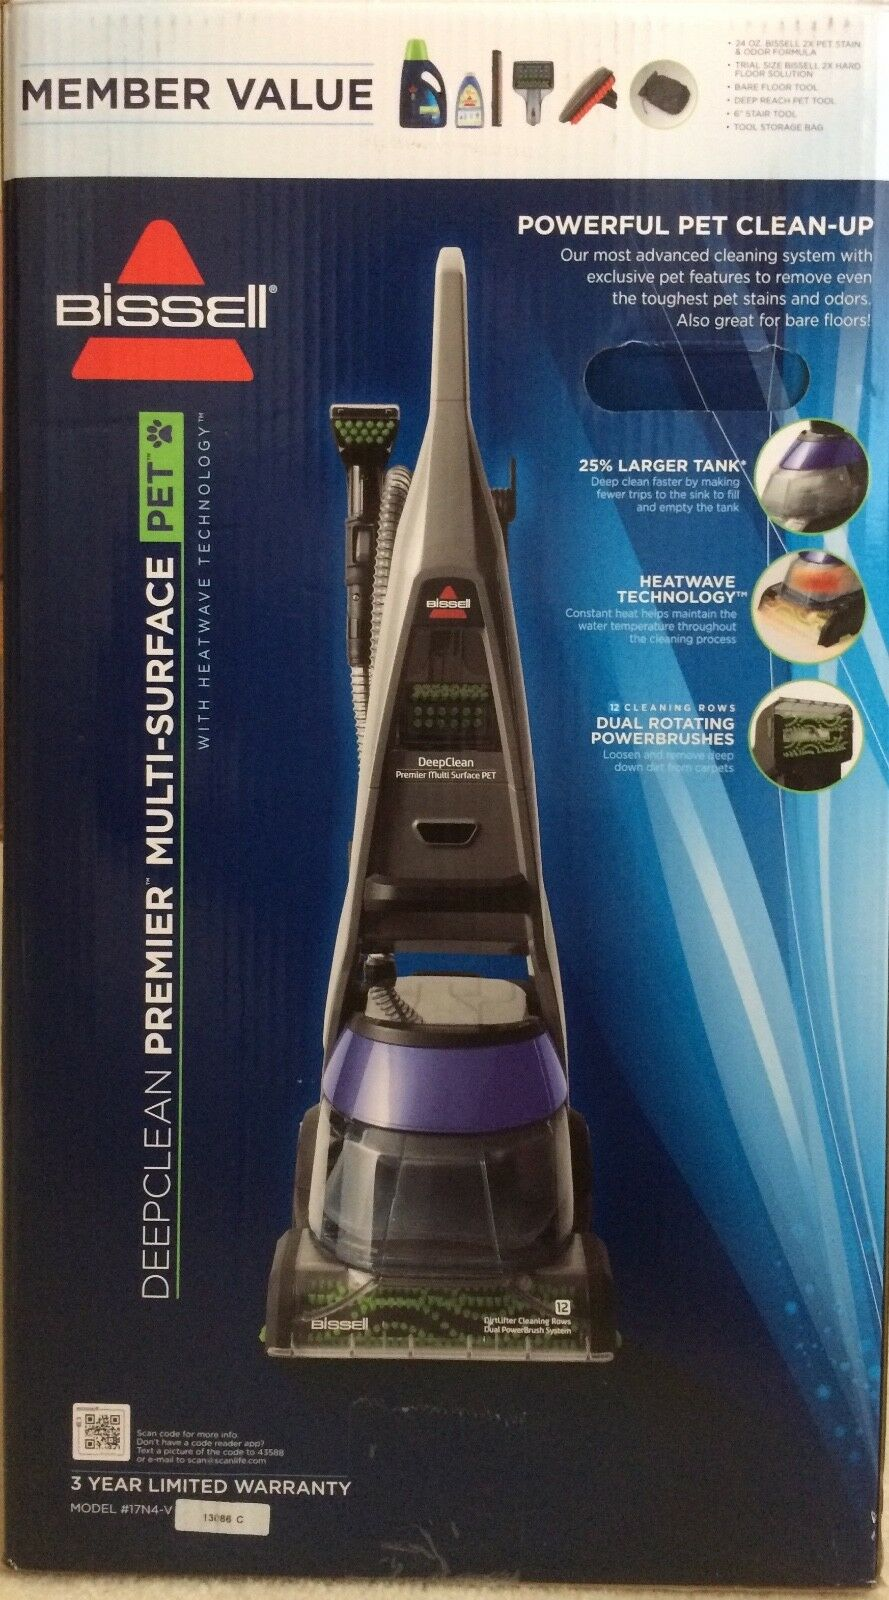 New BISSELL DeepClean Premier Pet Carpet Cleaner, 17N4-V